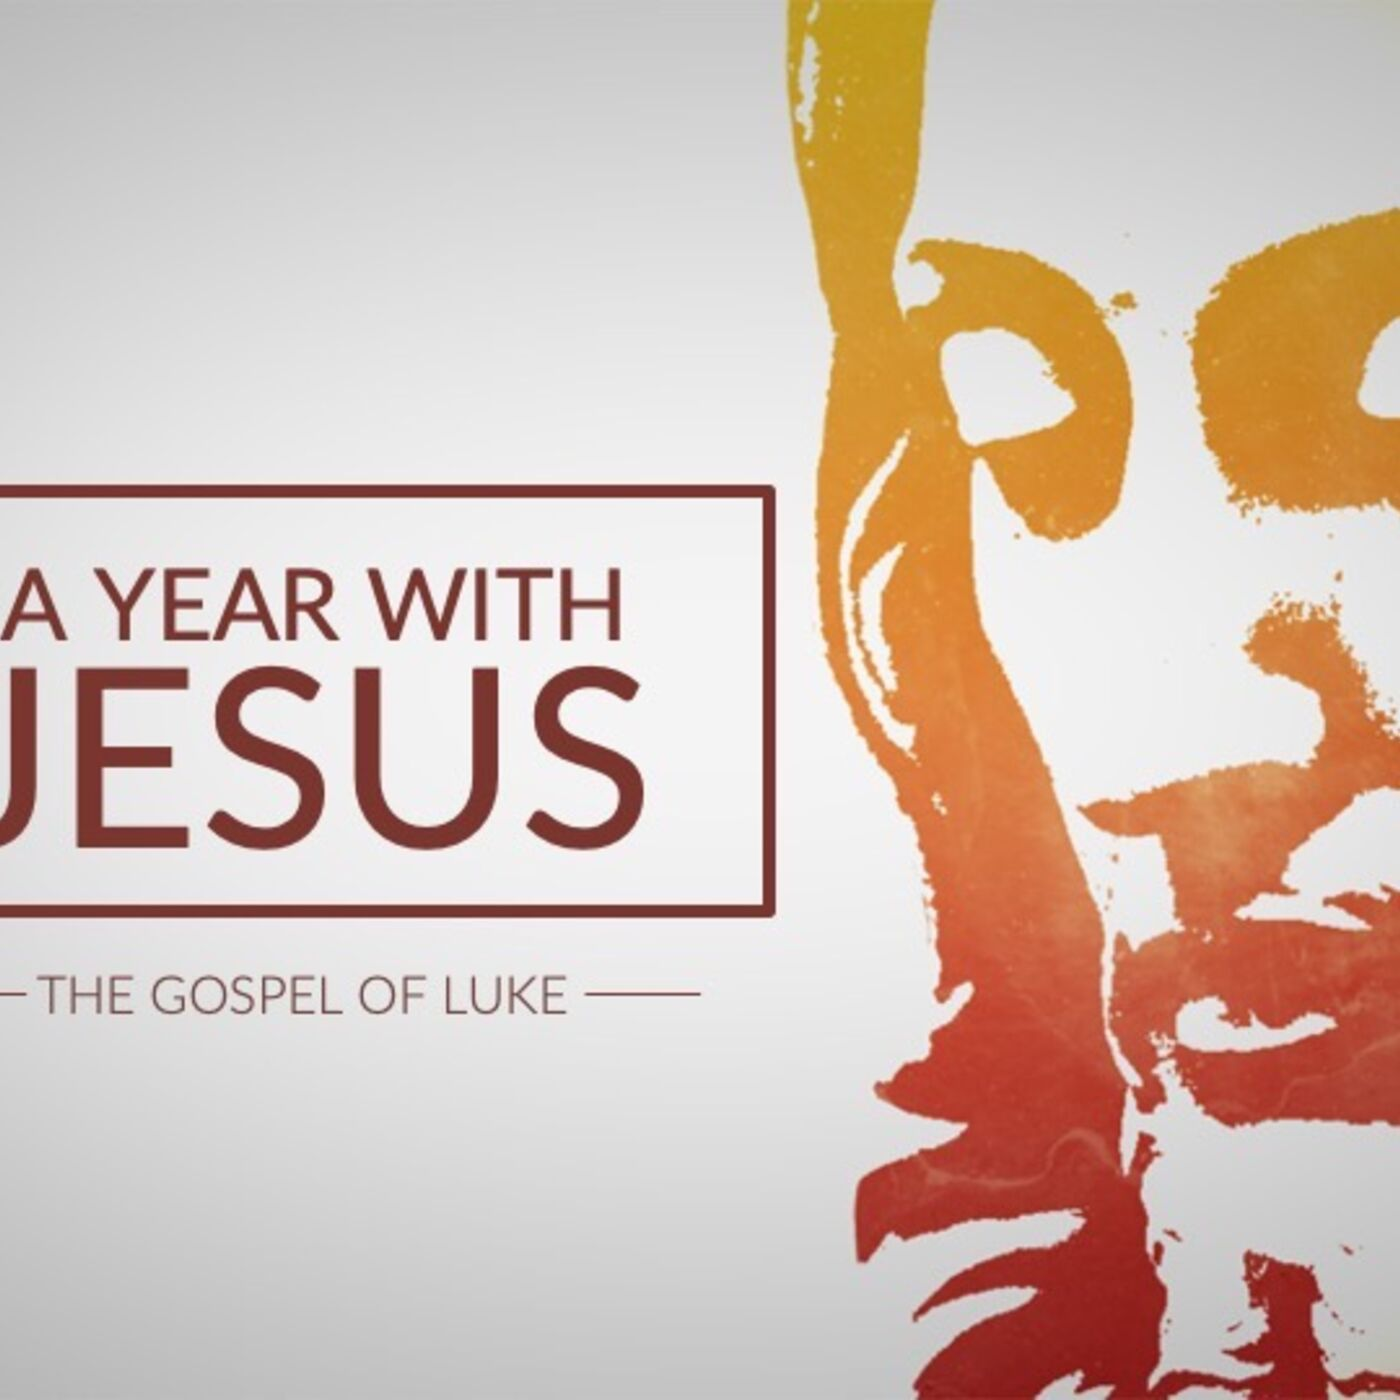 A Year With Jesus: The Parable of the Good Samaritan (Luke 10:25-37)